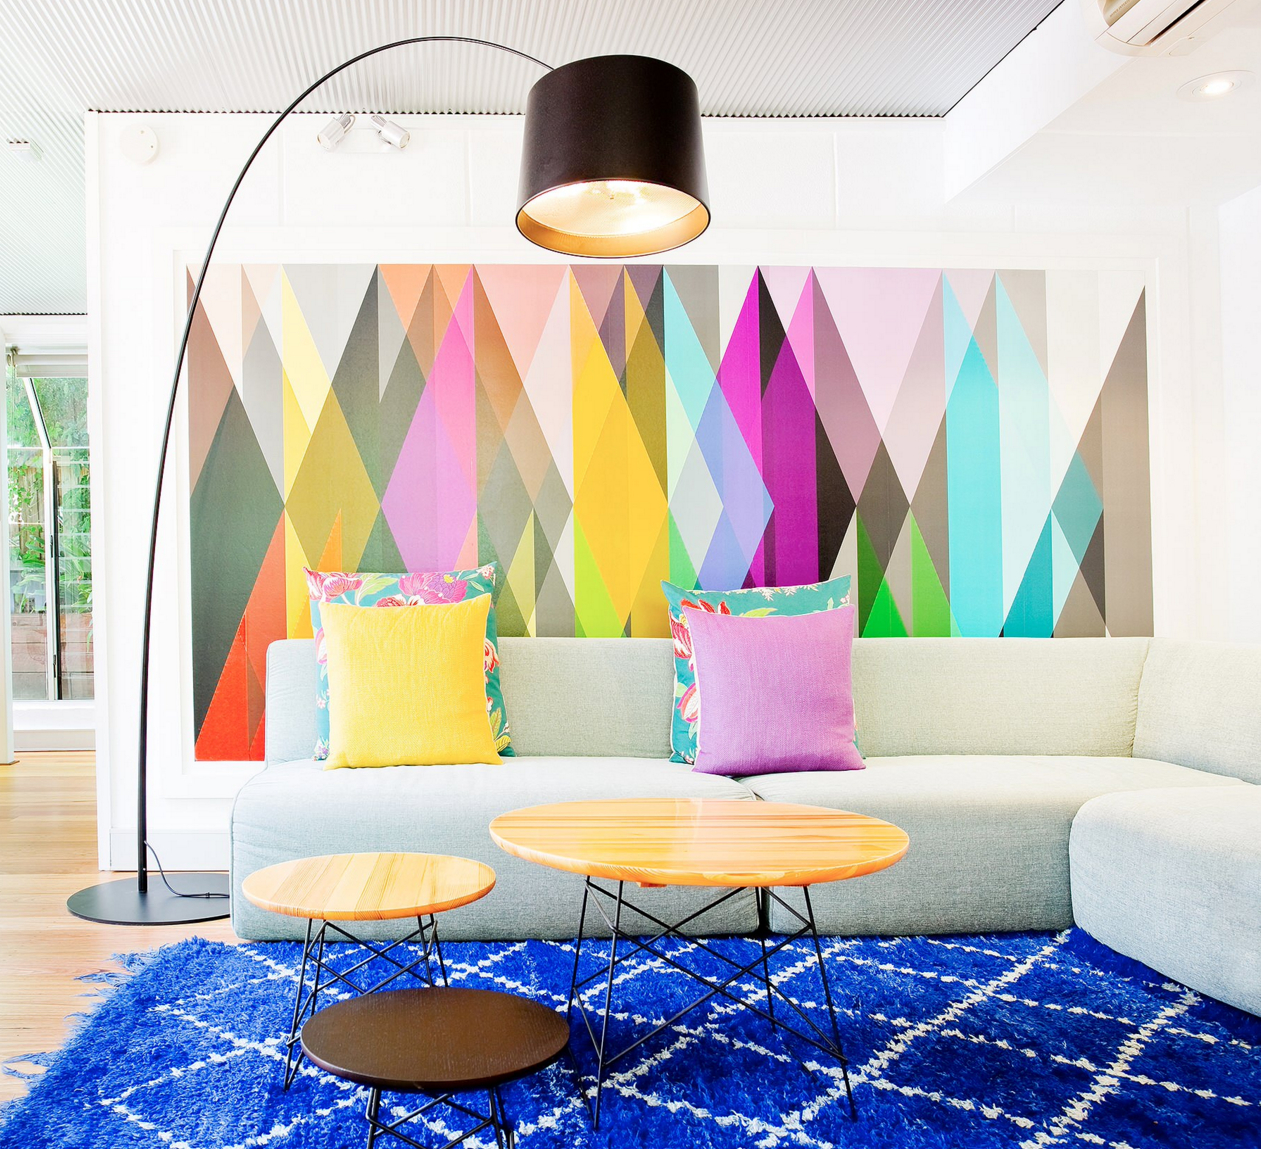 25 Dazzling Geometric Walls For The Modern Home – Freshome With Regard To Contemporary Geometric Wall Decor (View 20 of 30)